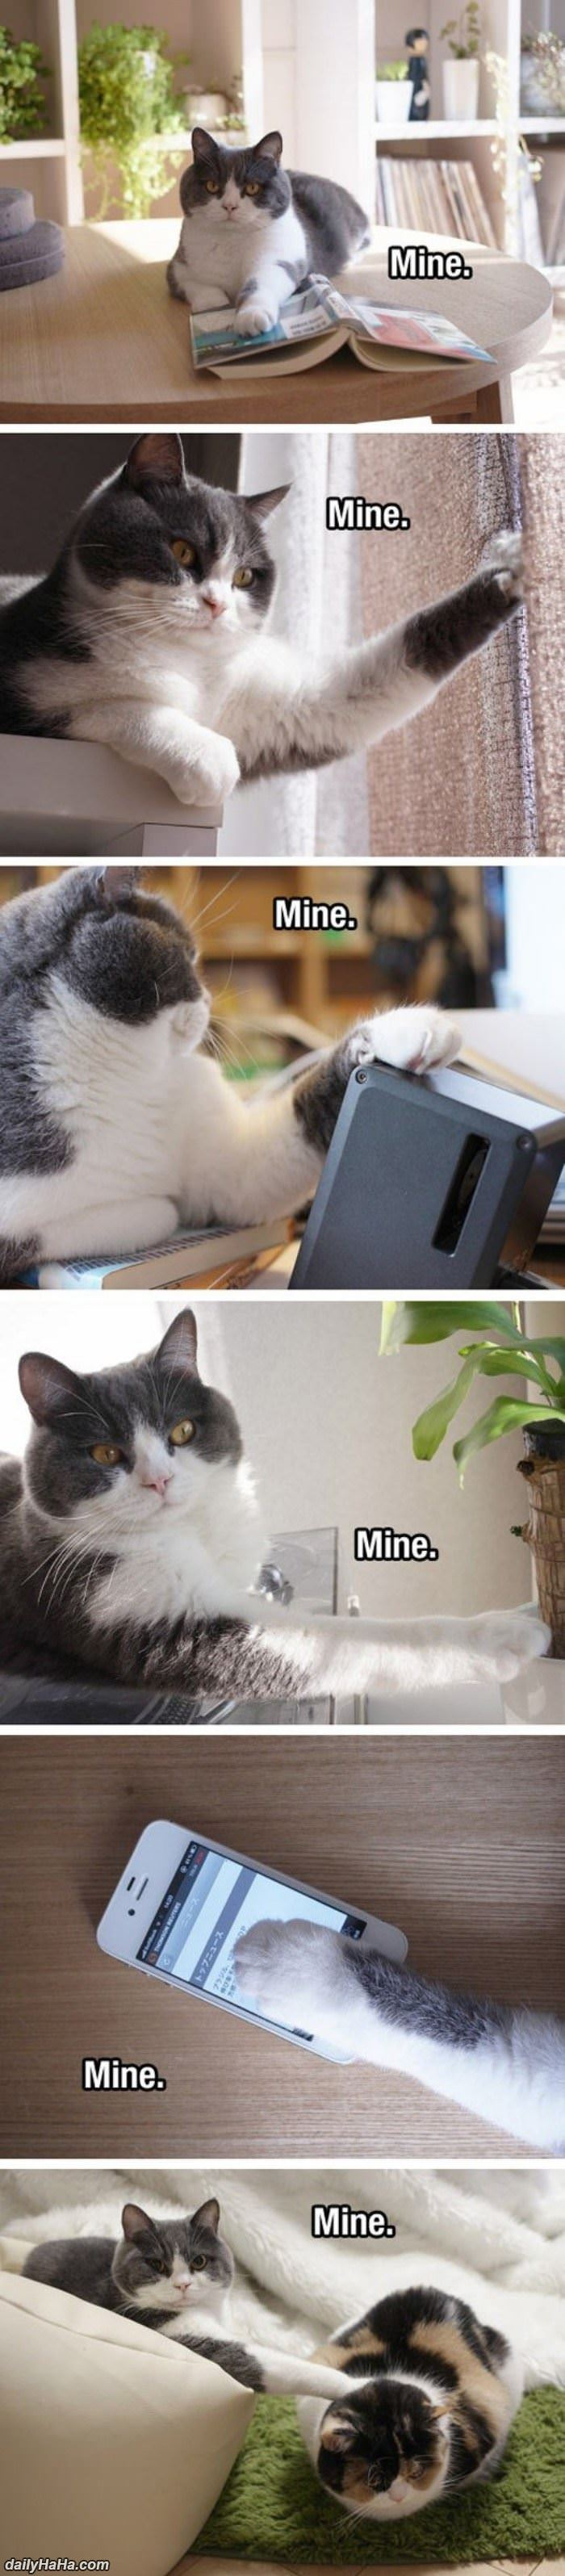 dailyhaha die or funny hilarious pictures